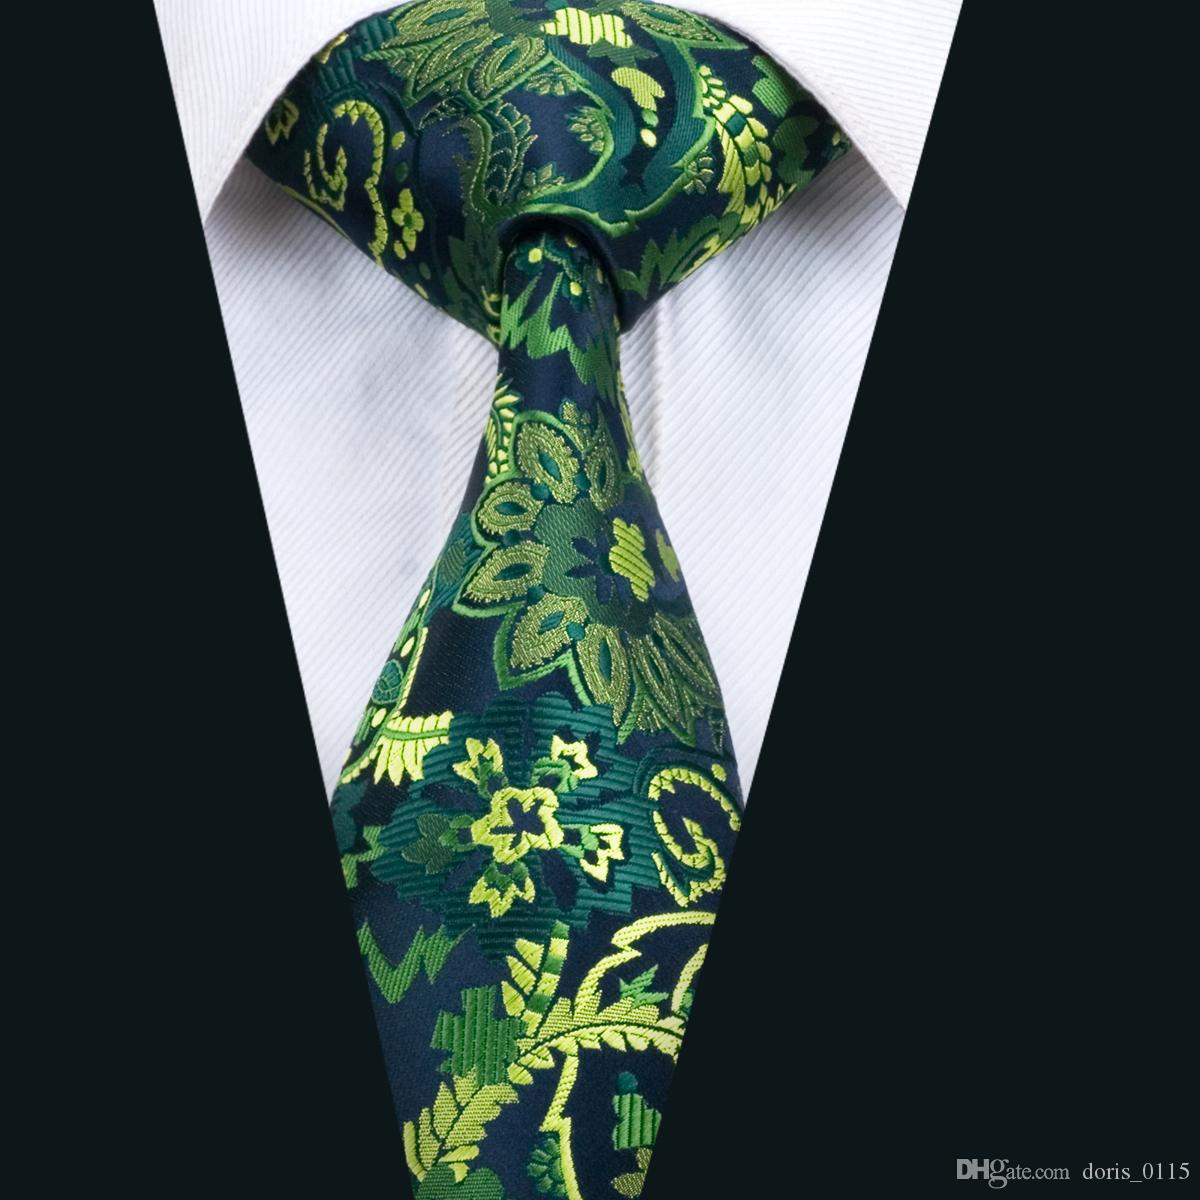 9311cea8dde7 Classic Silk Tie Green Mens Ties Floral Necktie Jacquard Woven Business  Wedding Meeting Party Prom D 1444 Ties Online Purple Bow Tie From  Doris_0115, ...